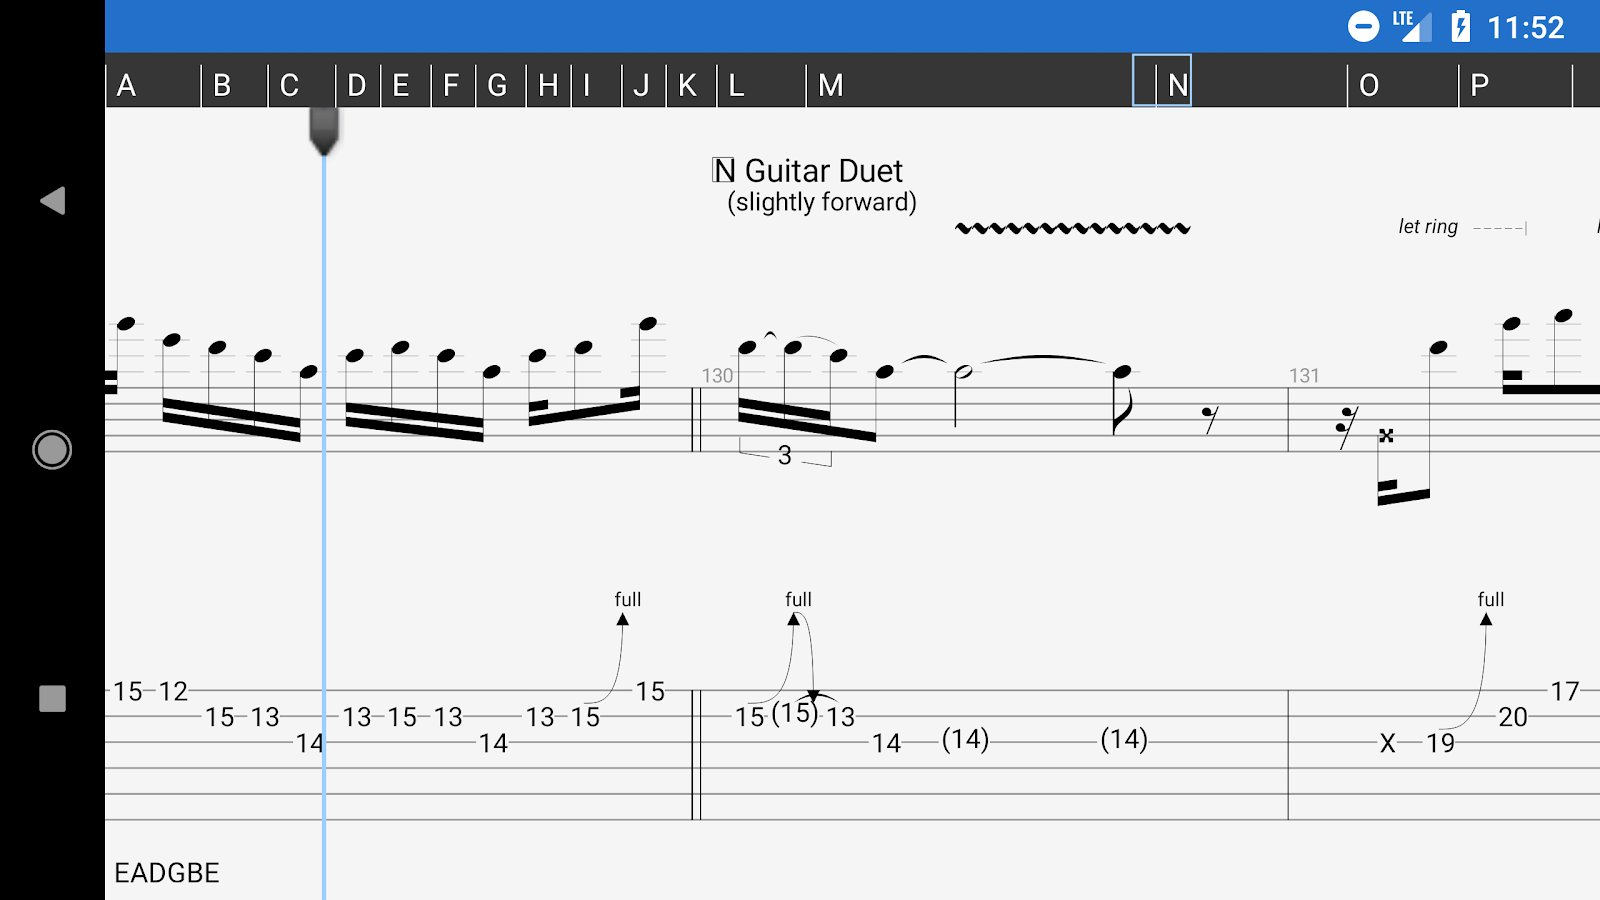 Guitar Pro 7 Crack + Mac. Guitar Pro 7.5.1 Crack 2019 is world best music learning software. That support you to learn how to operate and generate music from the guitar.